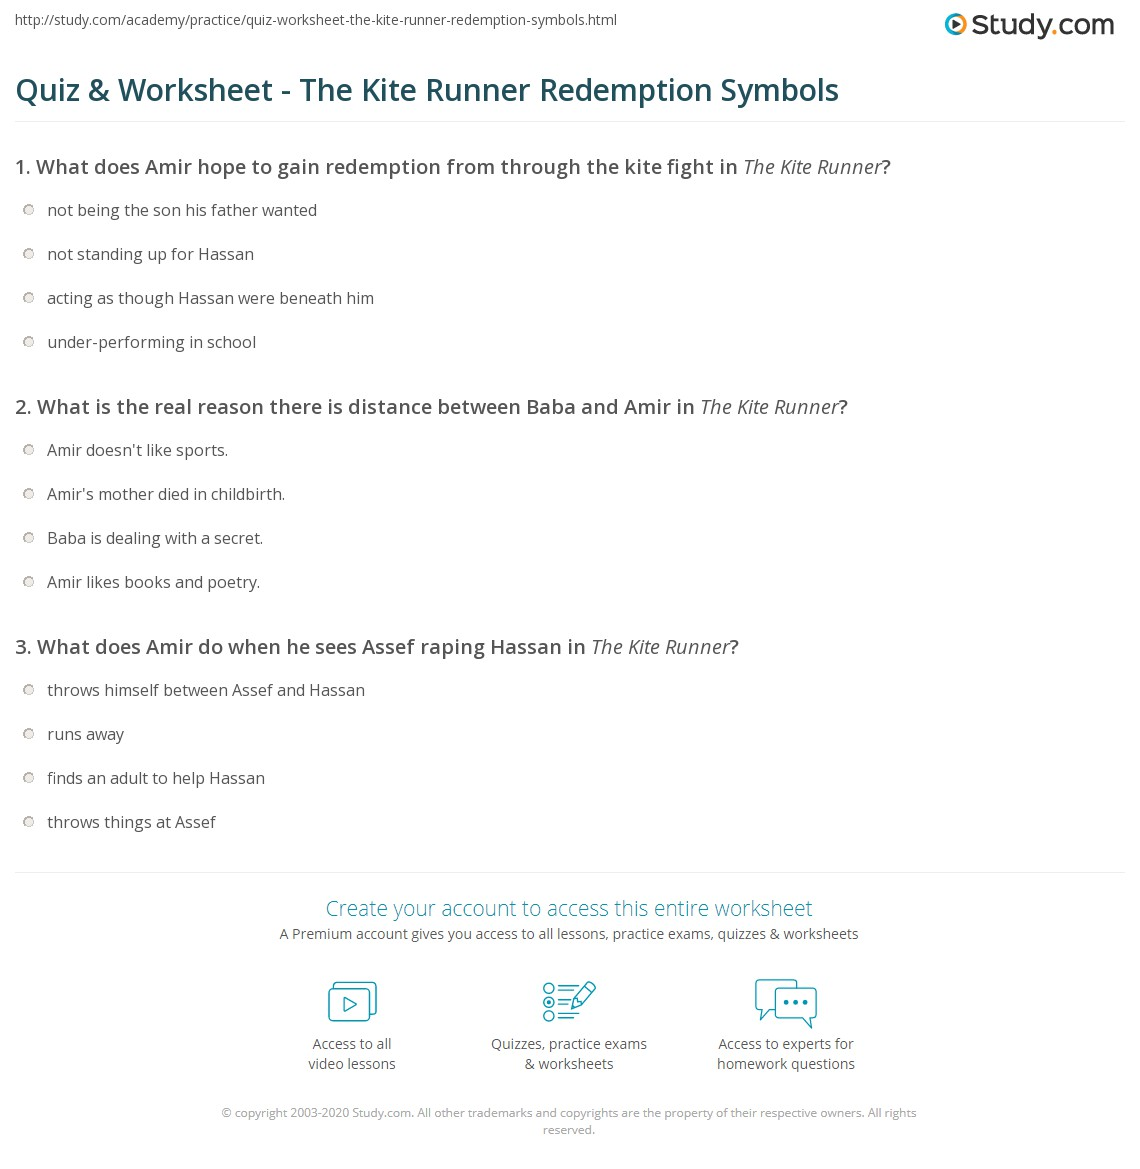 Quiz Worksheet The Kite Runner Redemption Symbols Study